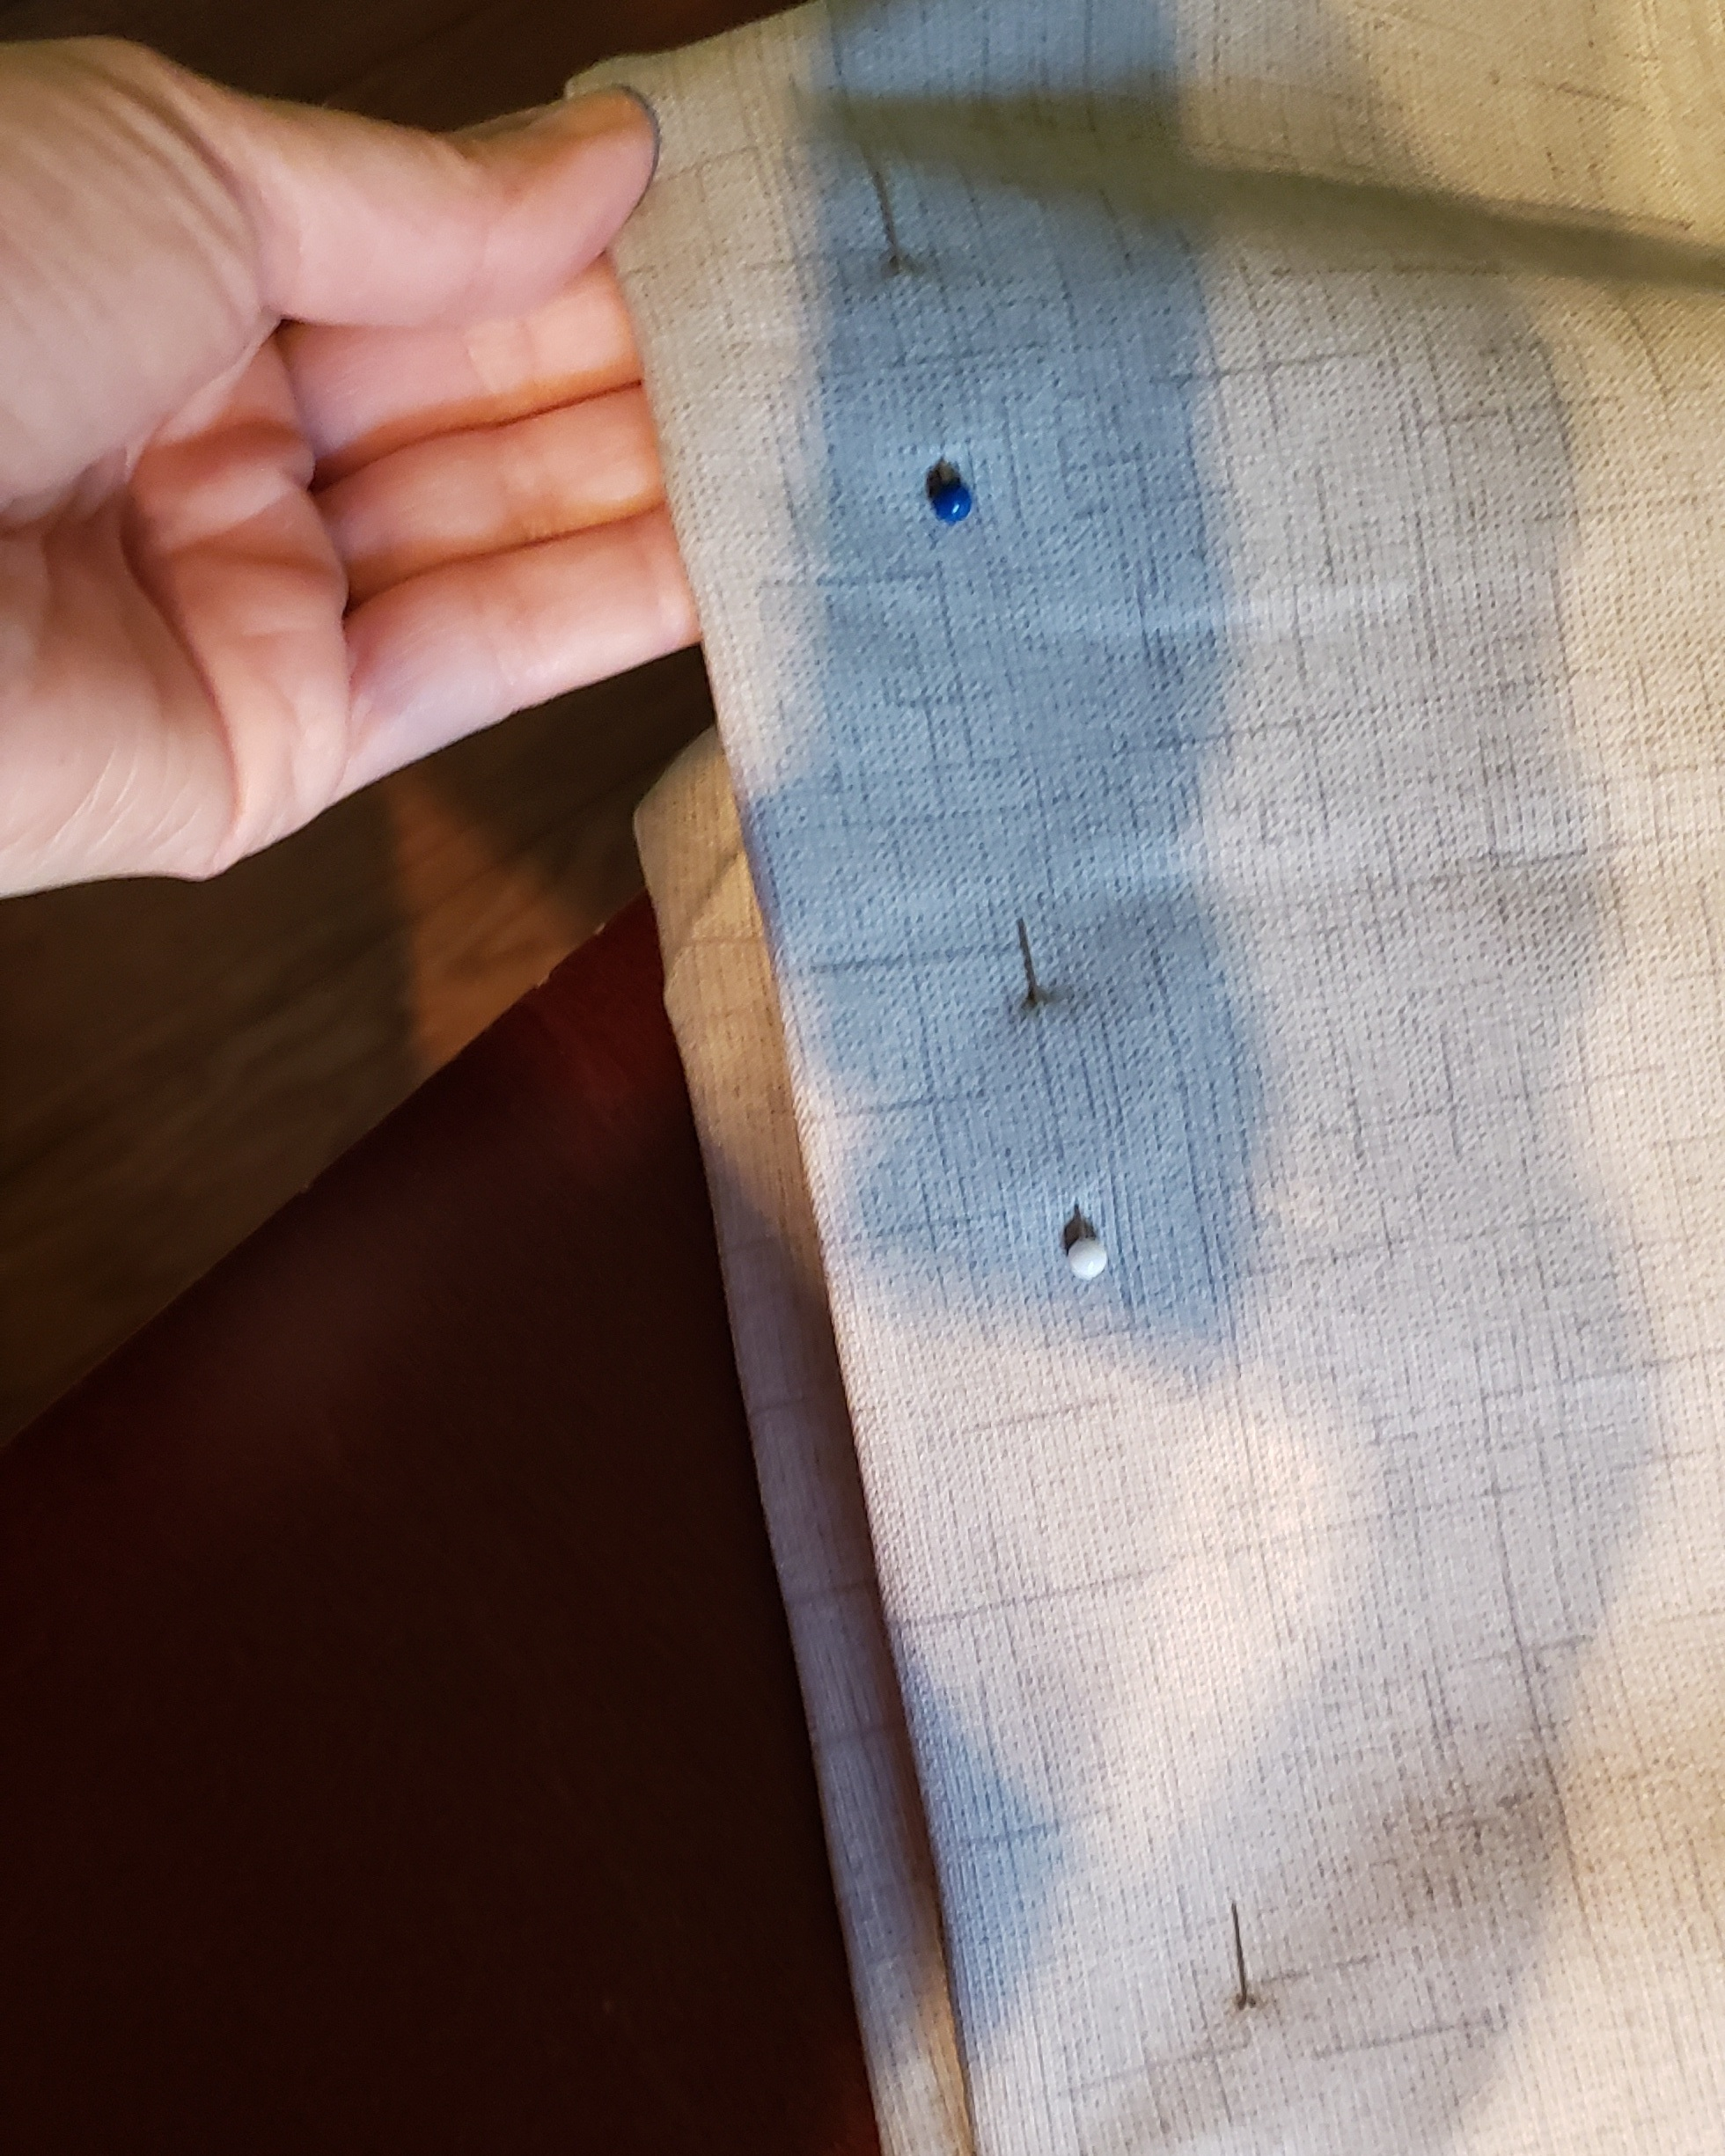 - I pinned down the fabric so that it wouldn't shift when I would soon pin the zipper to the inside.